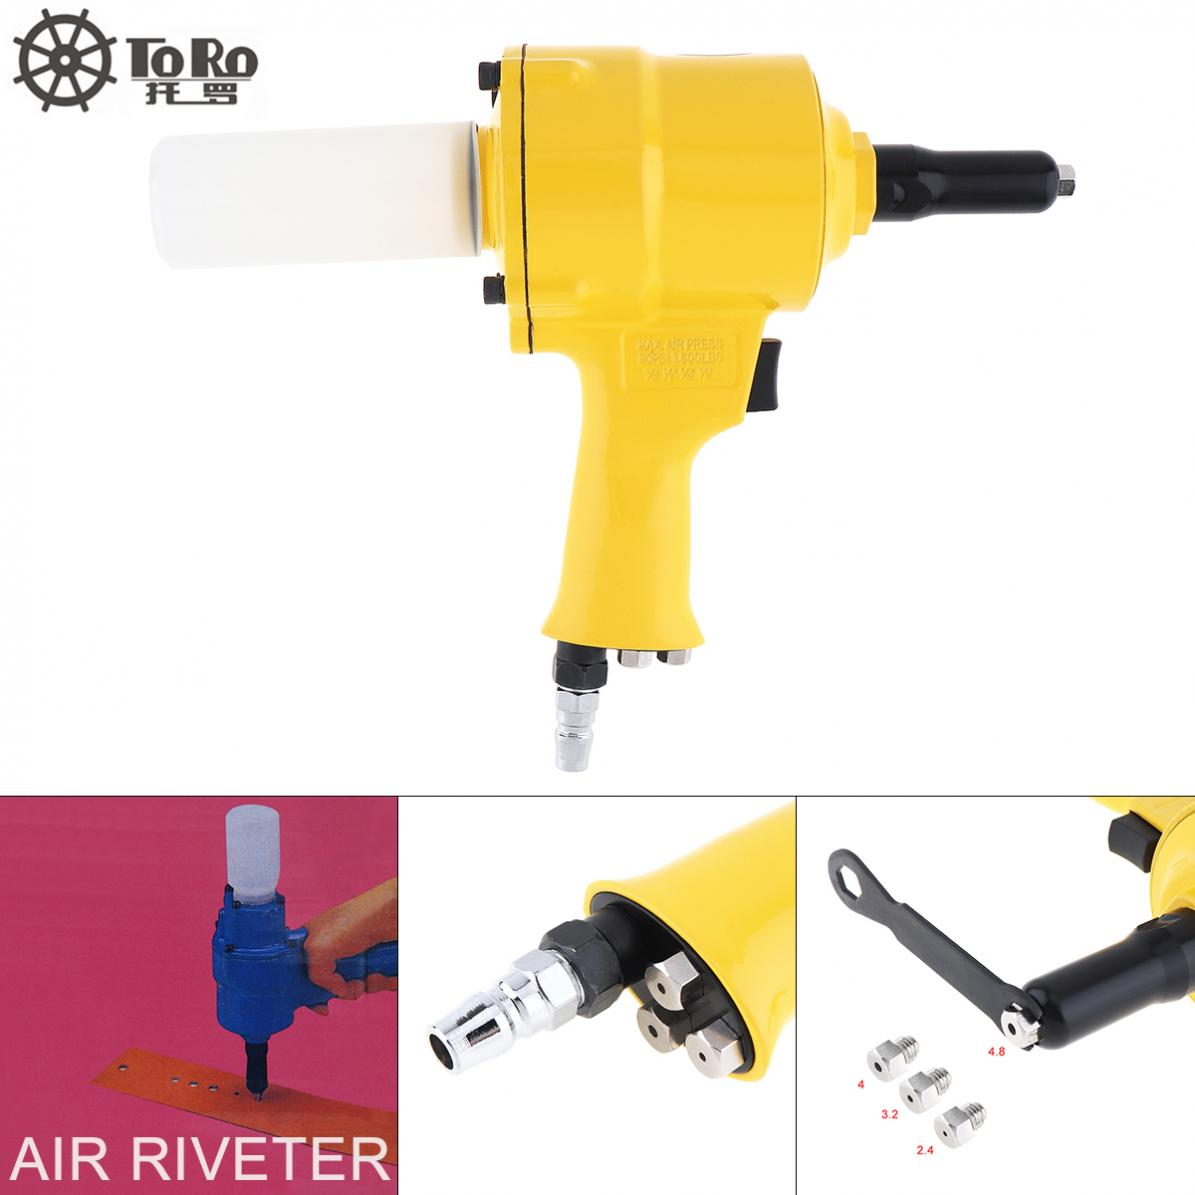 TORO Pistol type Pneumatic Rivet Gun Hydraulic Pop Rivet Pliers Gun with 4 Guide Nozzles and Small Hex Wrench for Punching Nails Pneumatic Tools     - title=